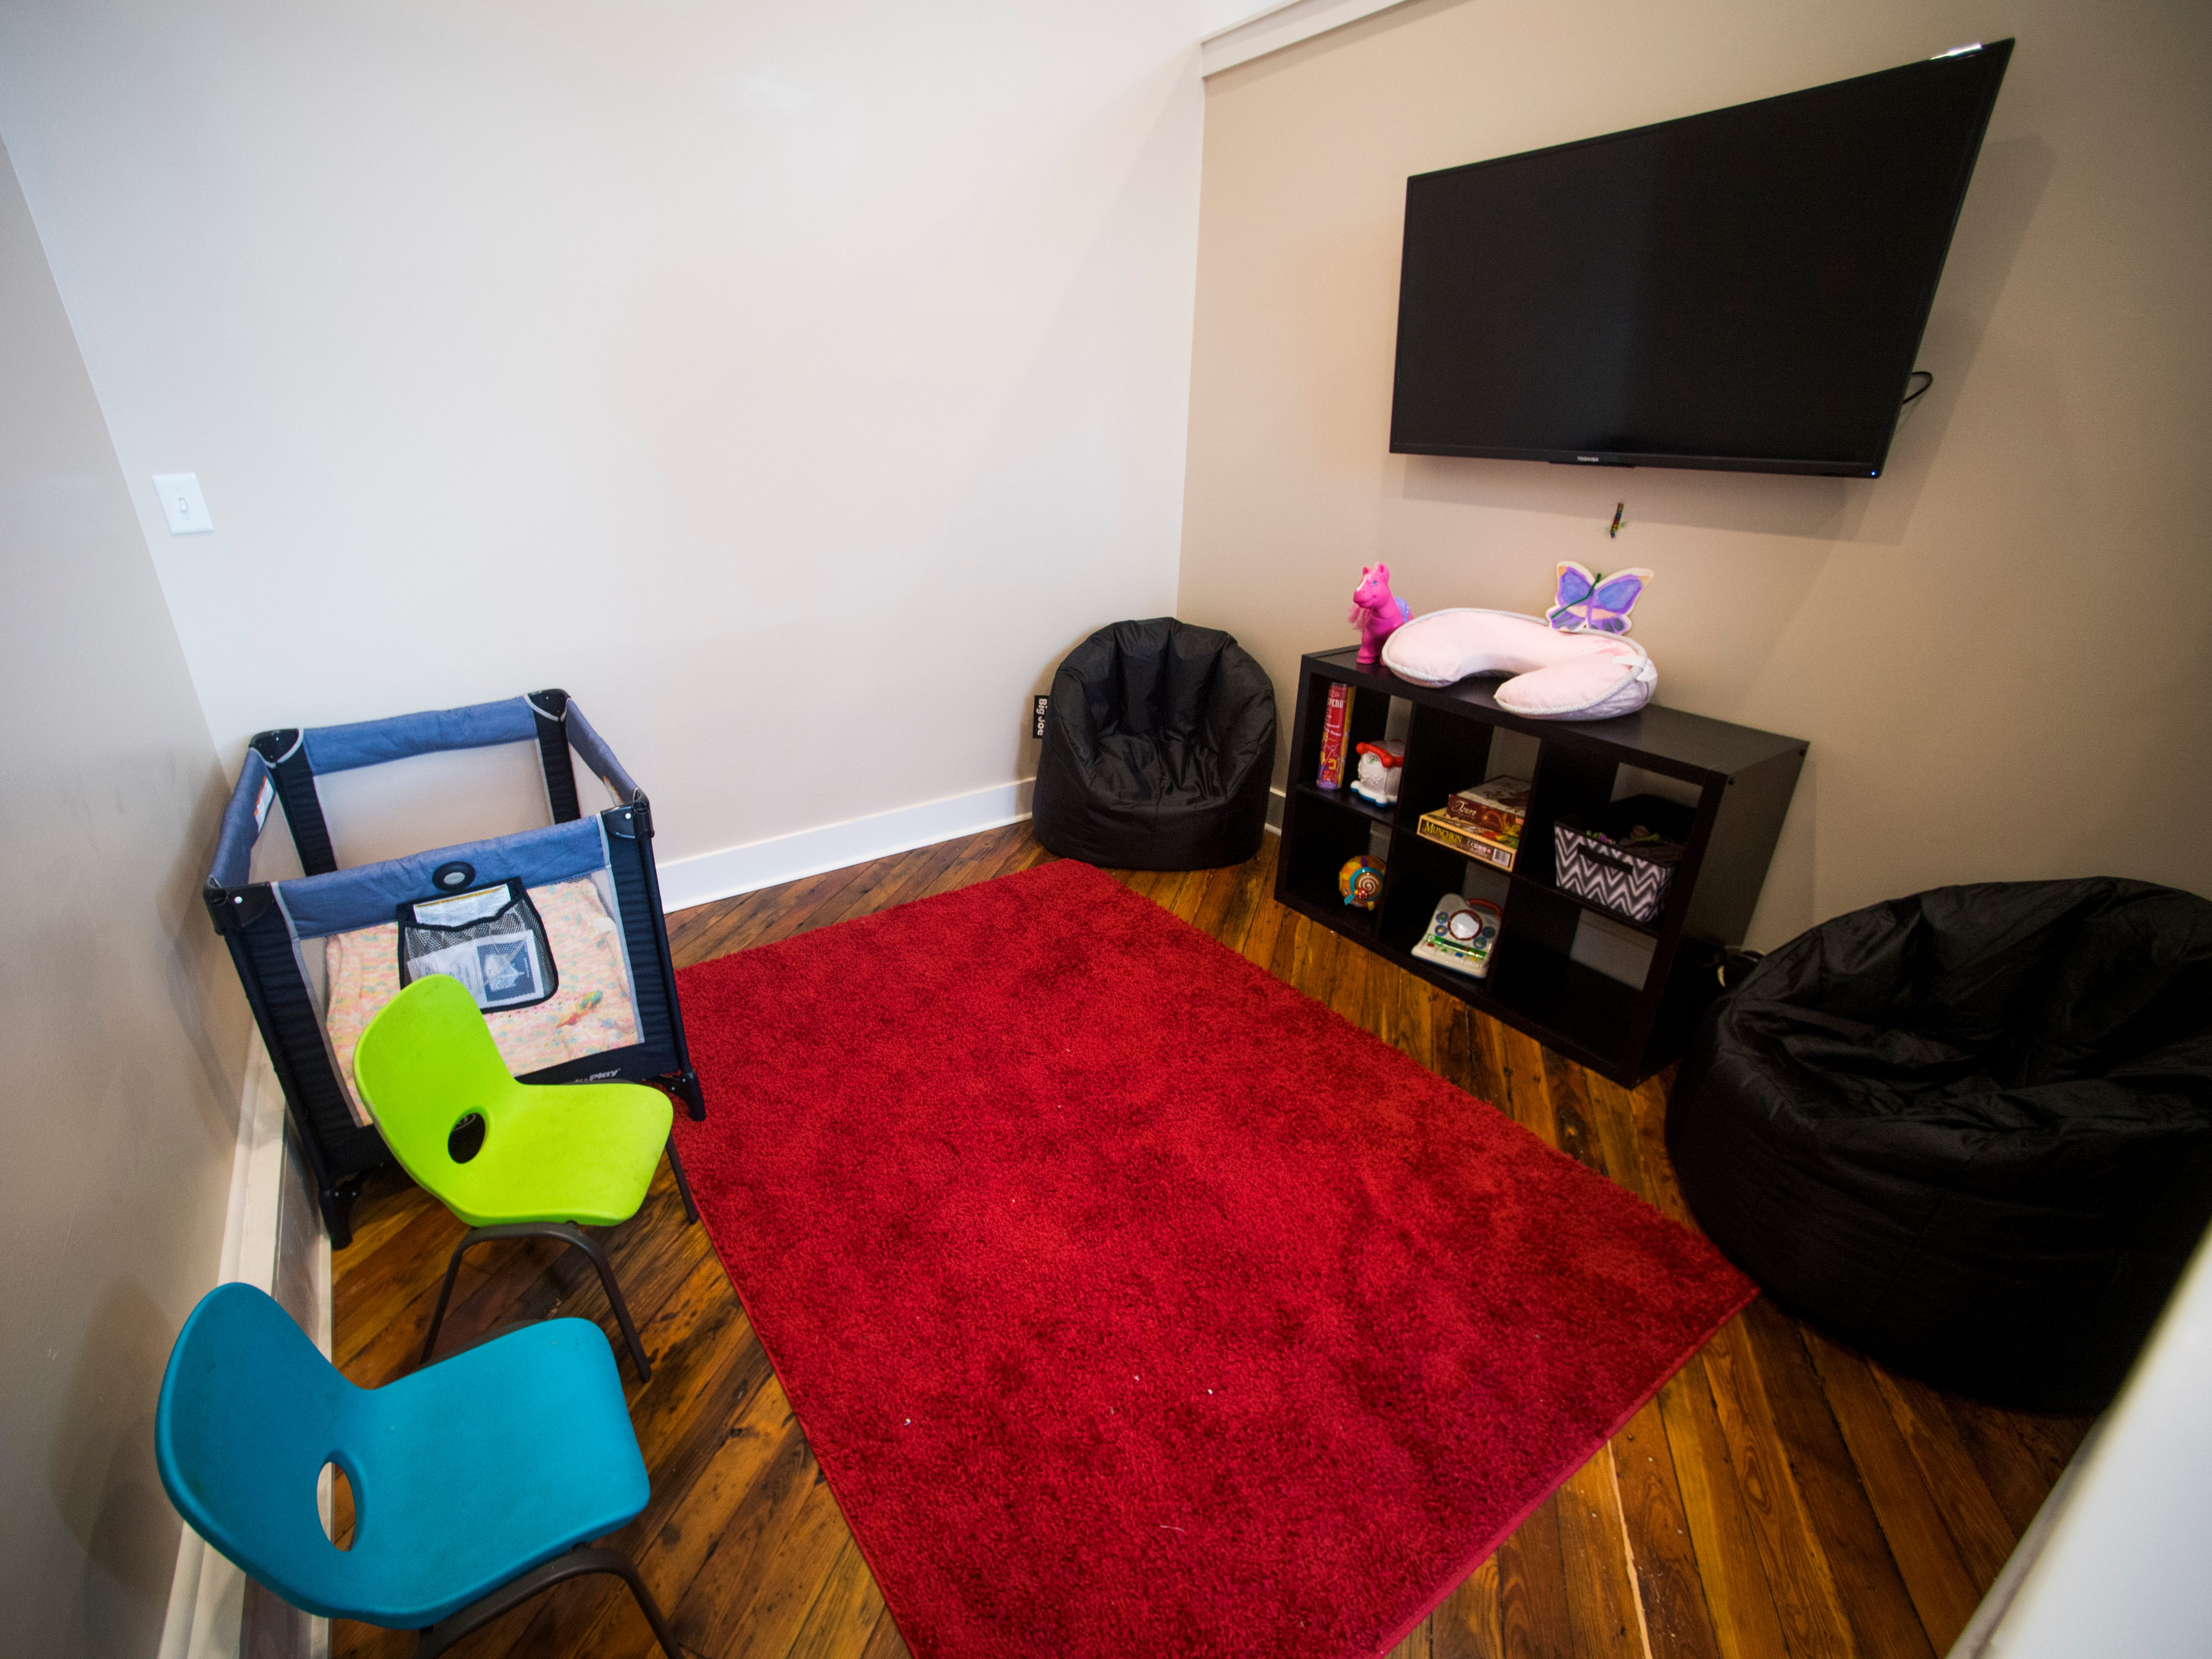 The children's area at Old City MedSpa in downtown Knoxville on Monday, February 4, 2019.